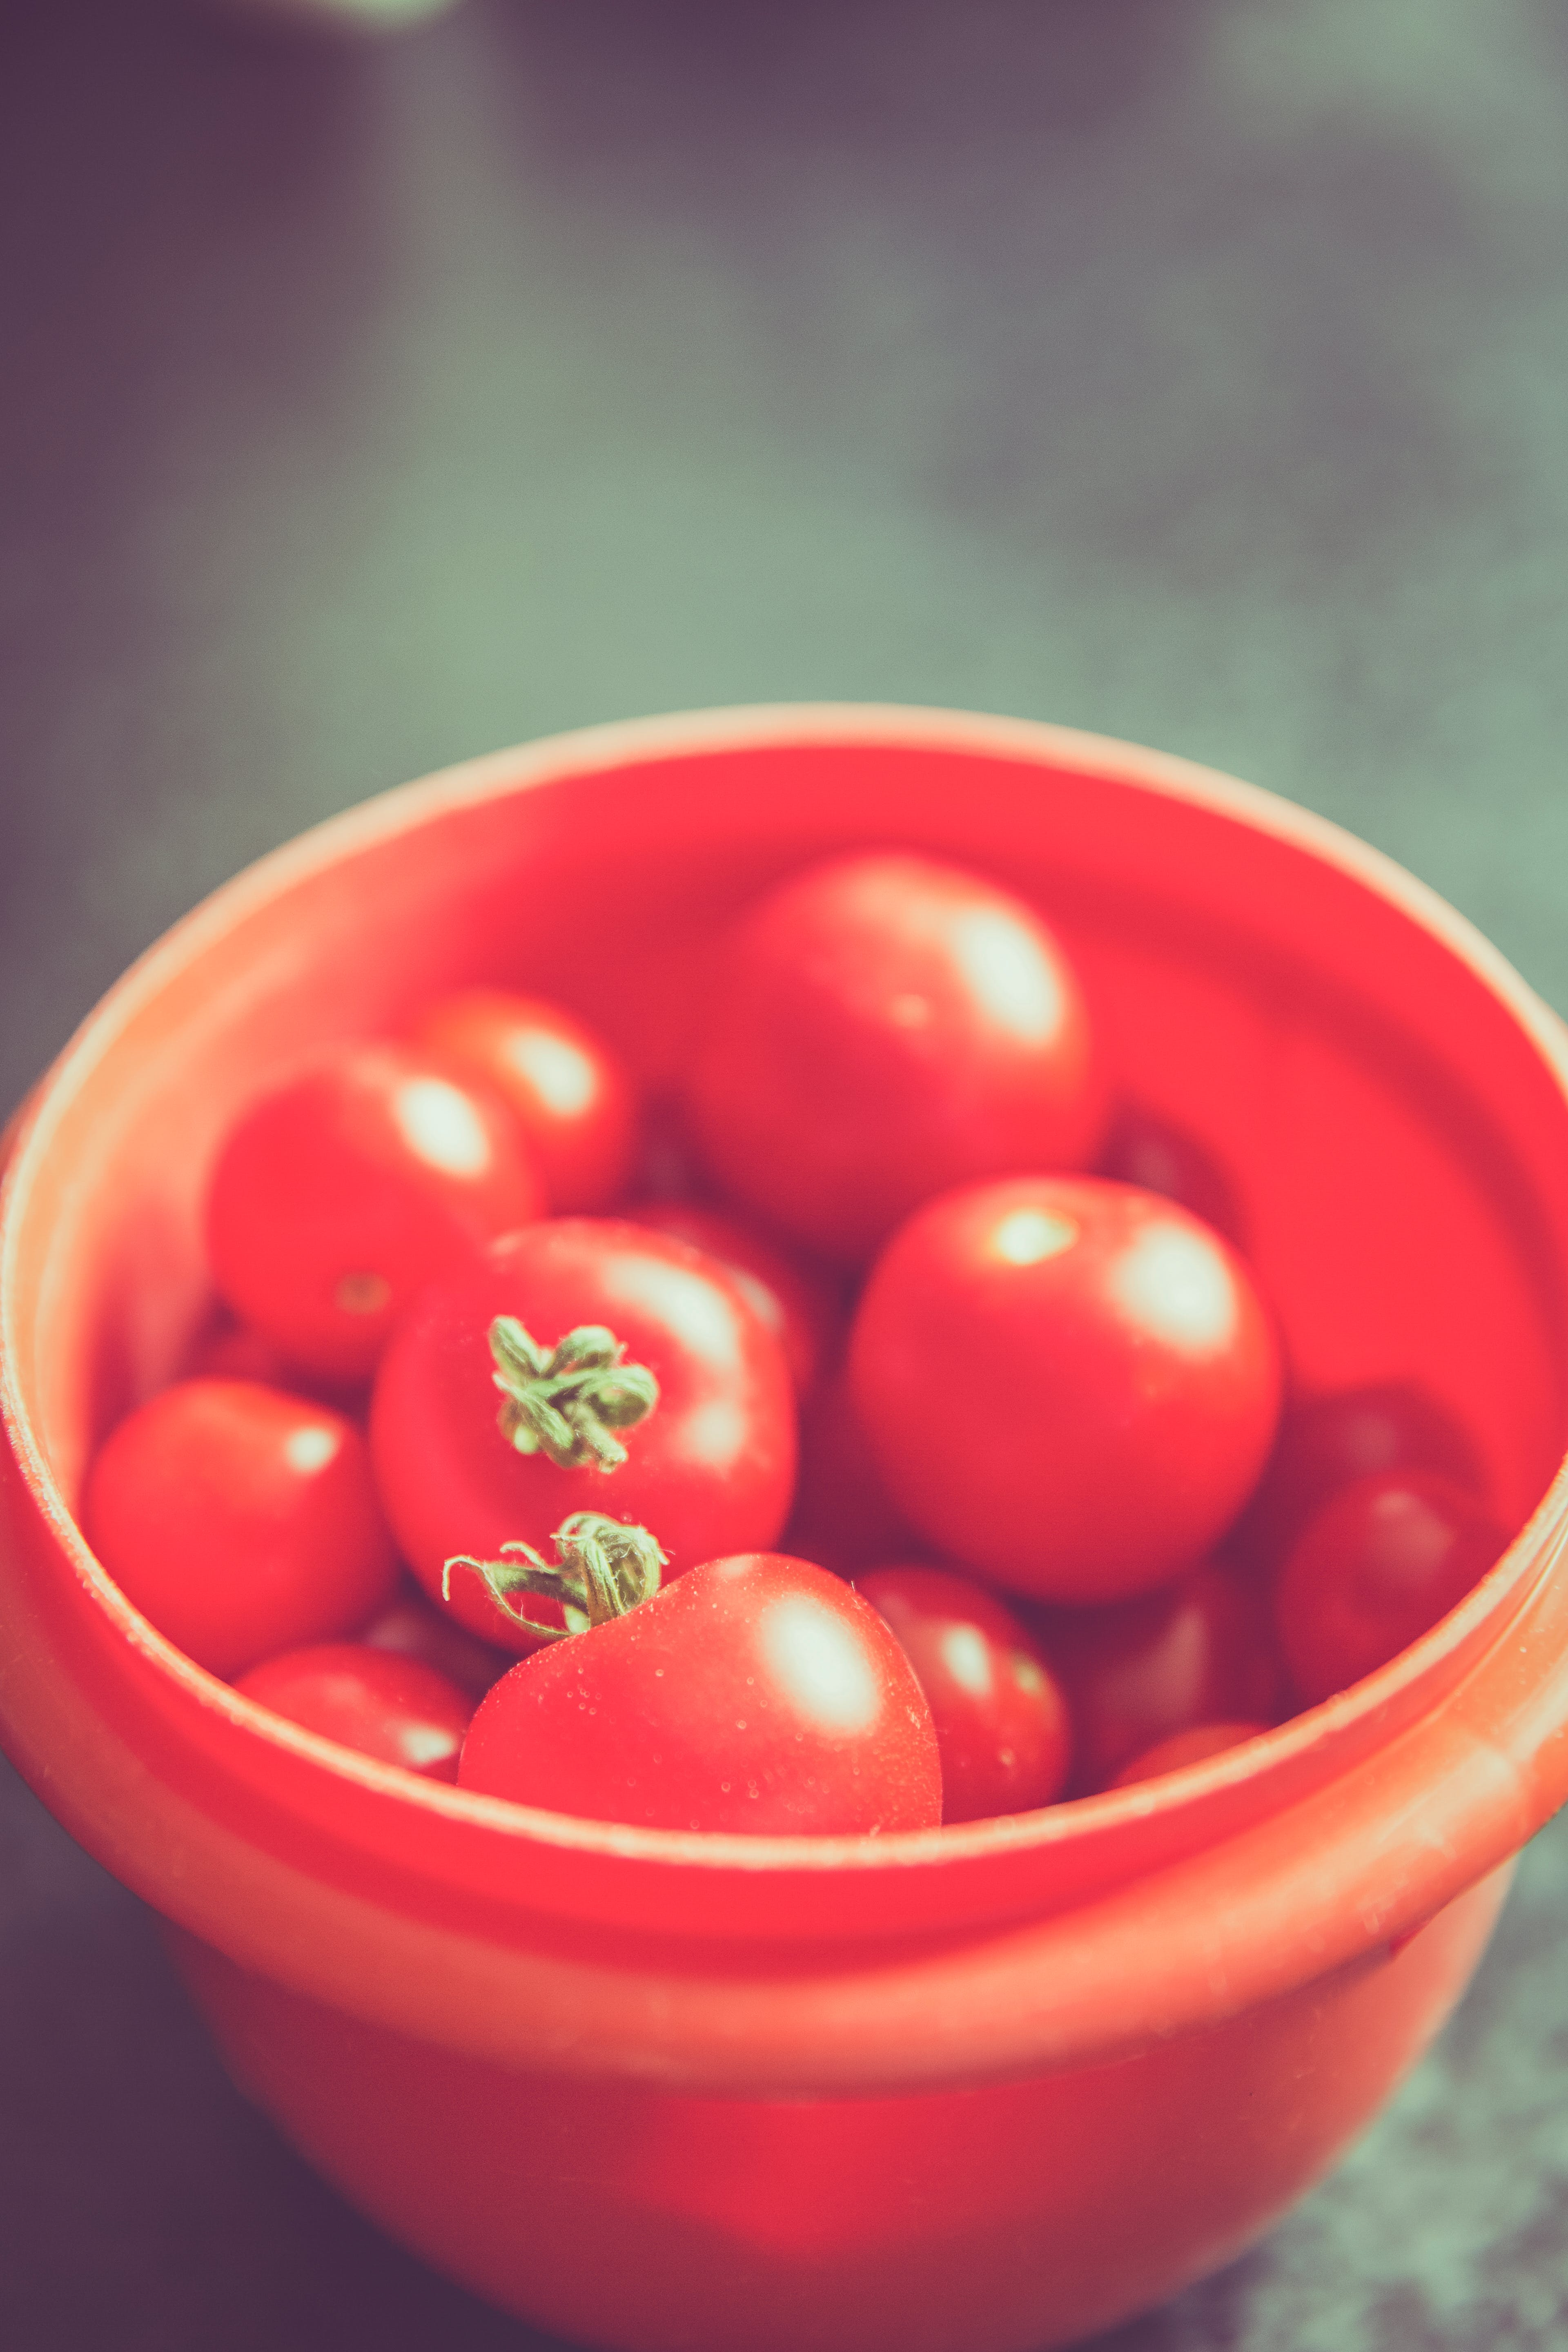 Red Tomato on Orange Round Plastic Container